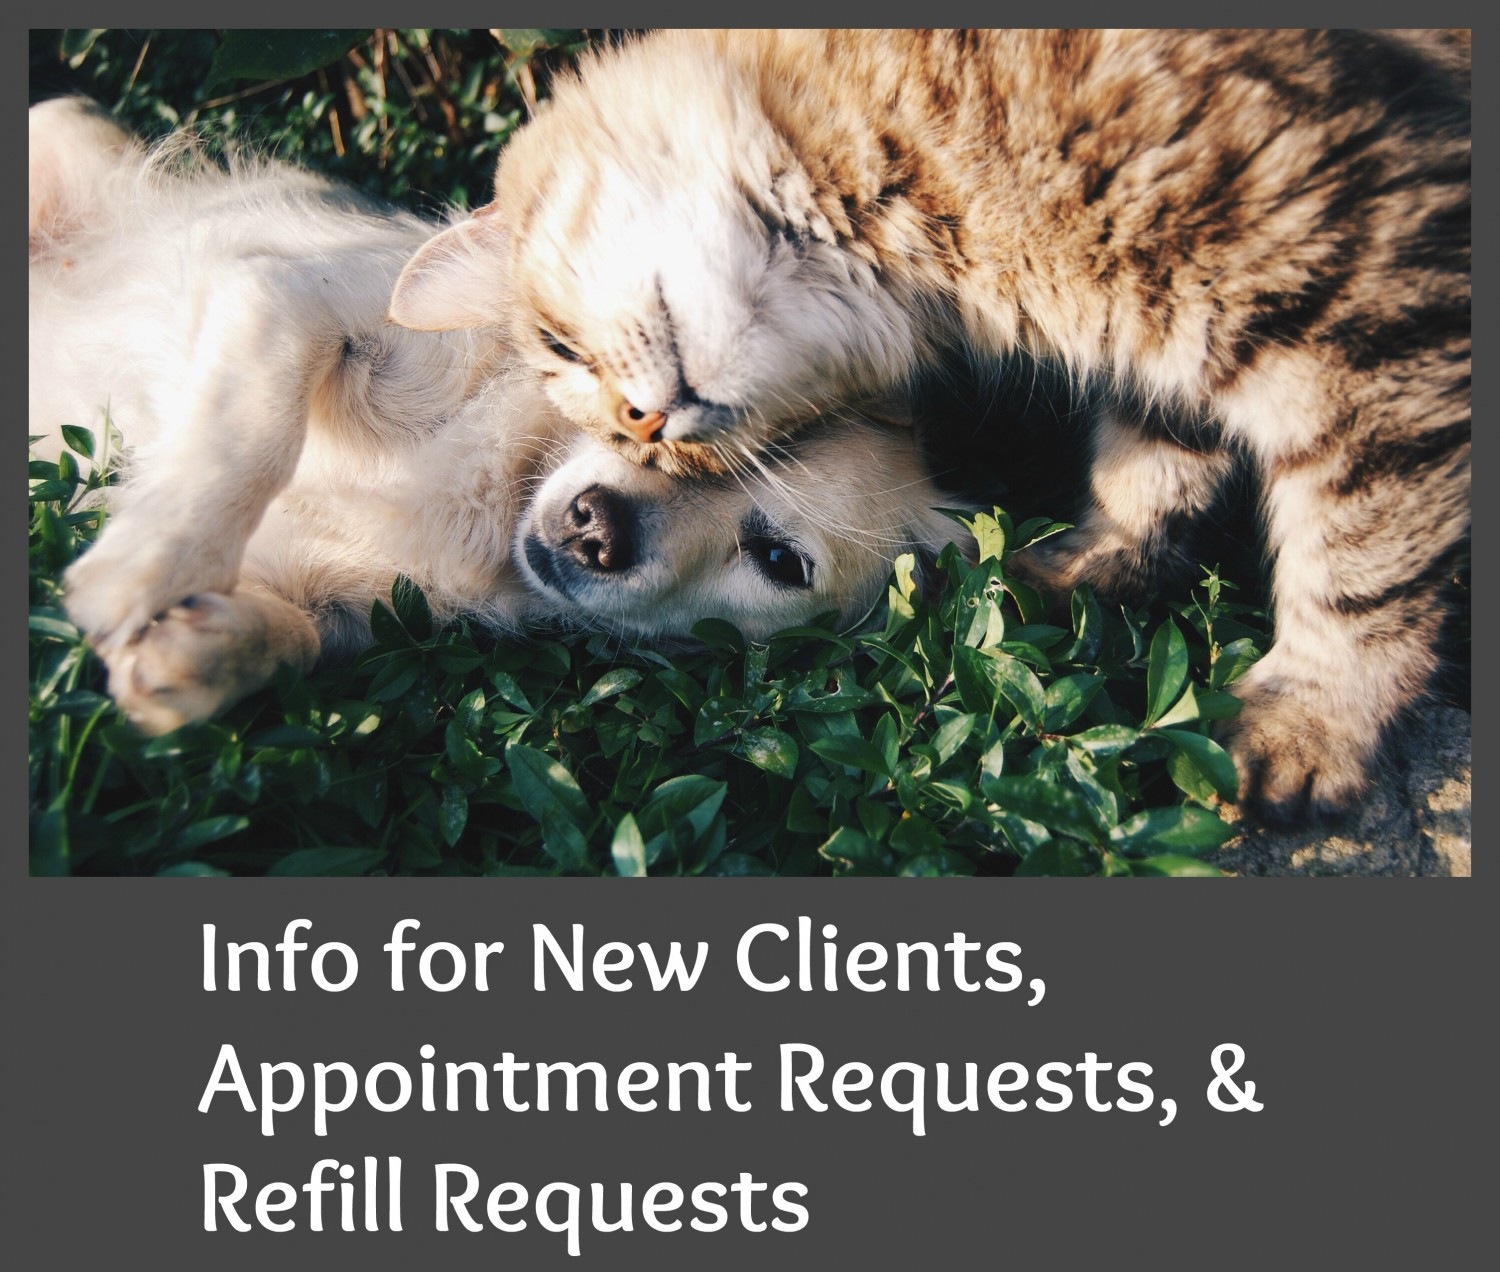 Animal Medical Clinic of Chesapeake 921 Battlefield Blvd, Chesapeake, Va 23320 New Client Appointments Refill Requests